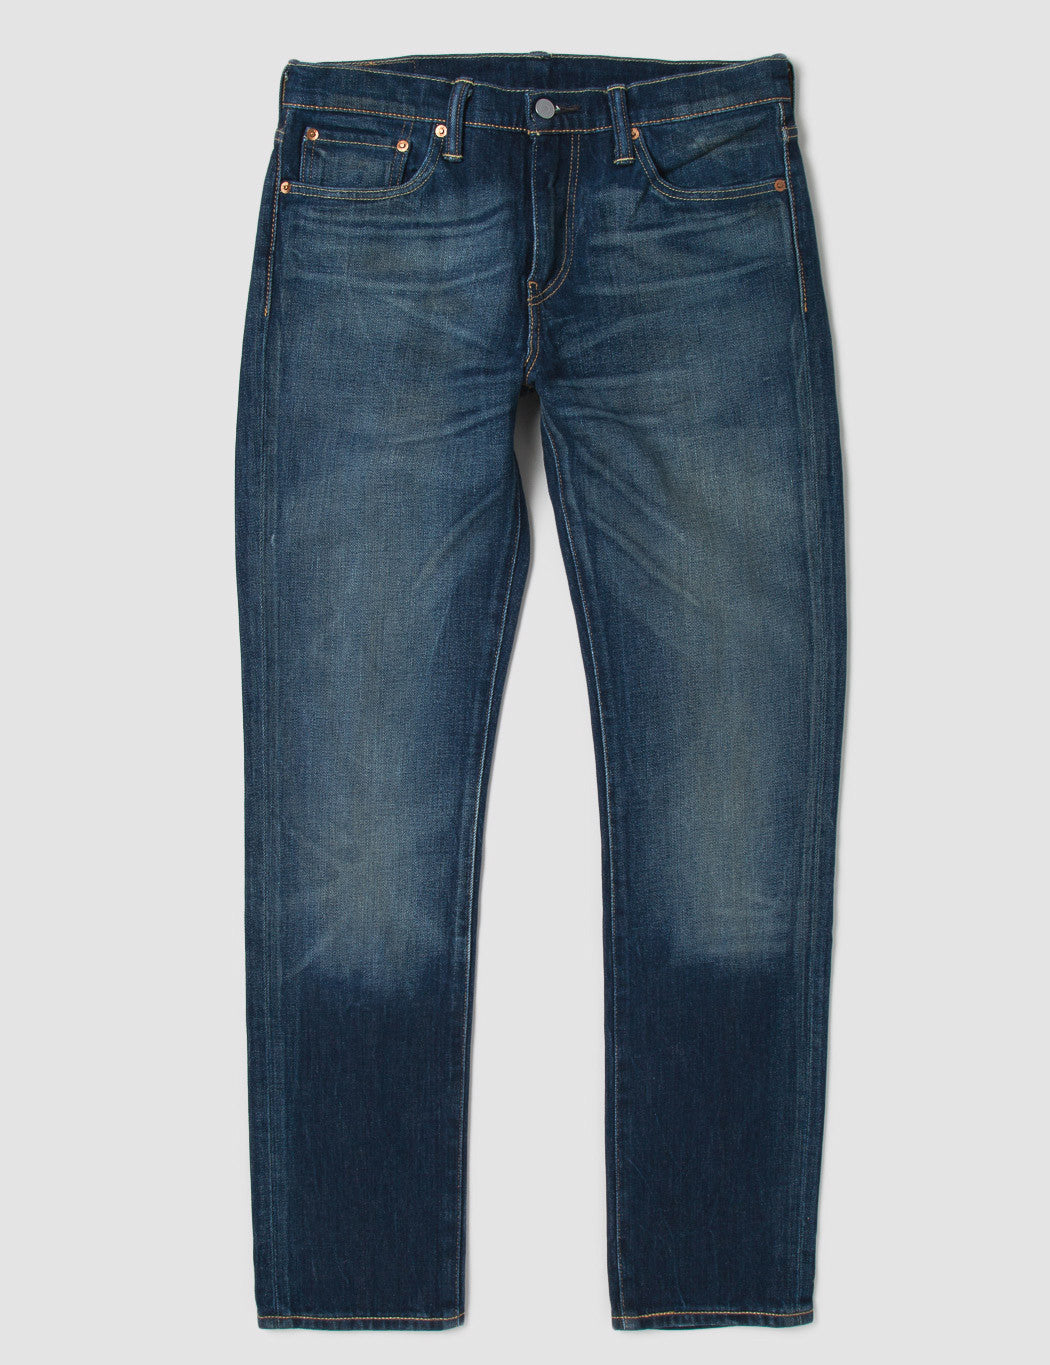 Levis 511 Slim Fit Jeans - Copper Tint